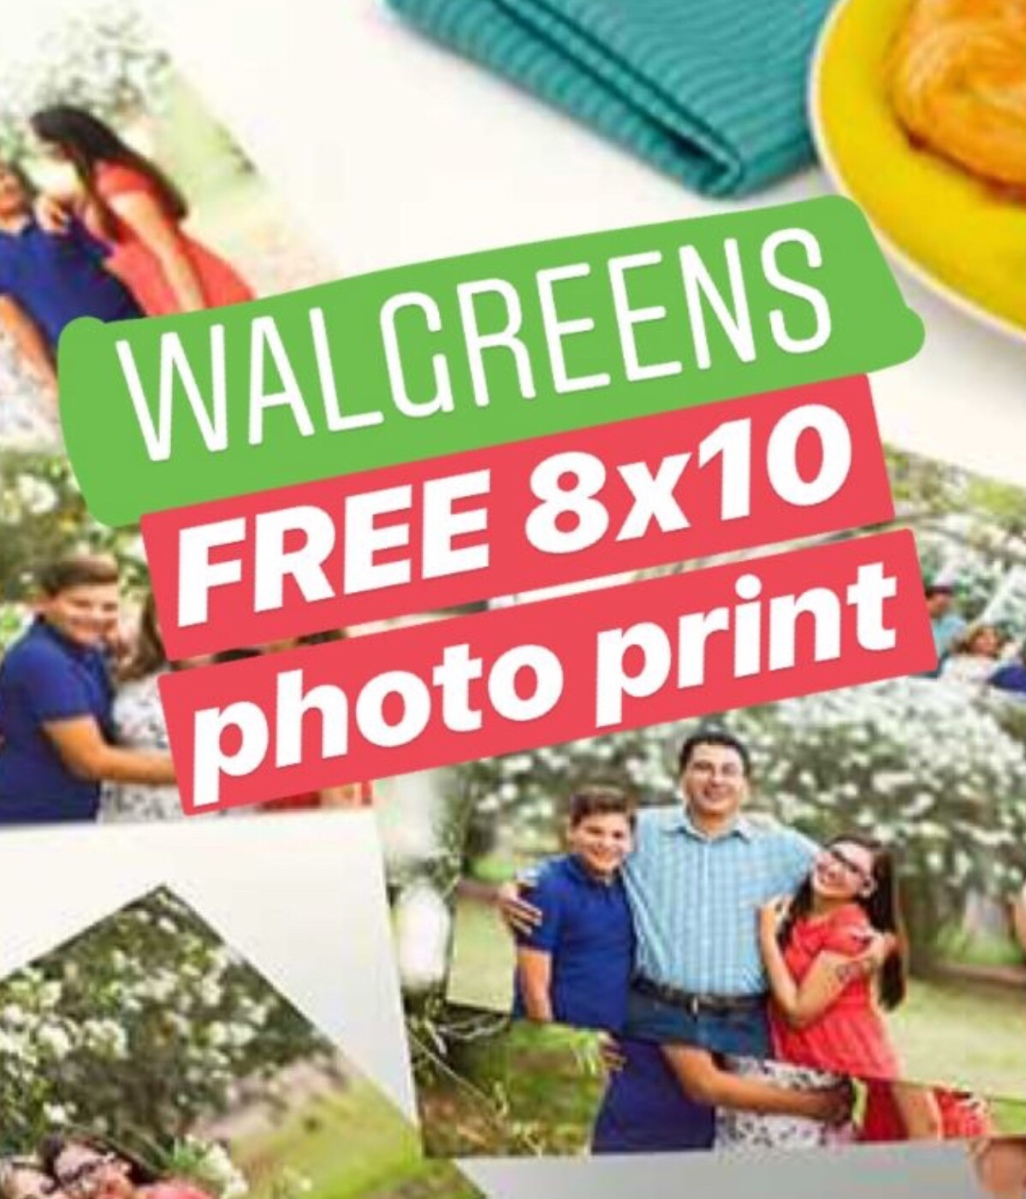 (Walgreens) Free 8 x 10 Photo Print